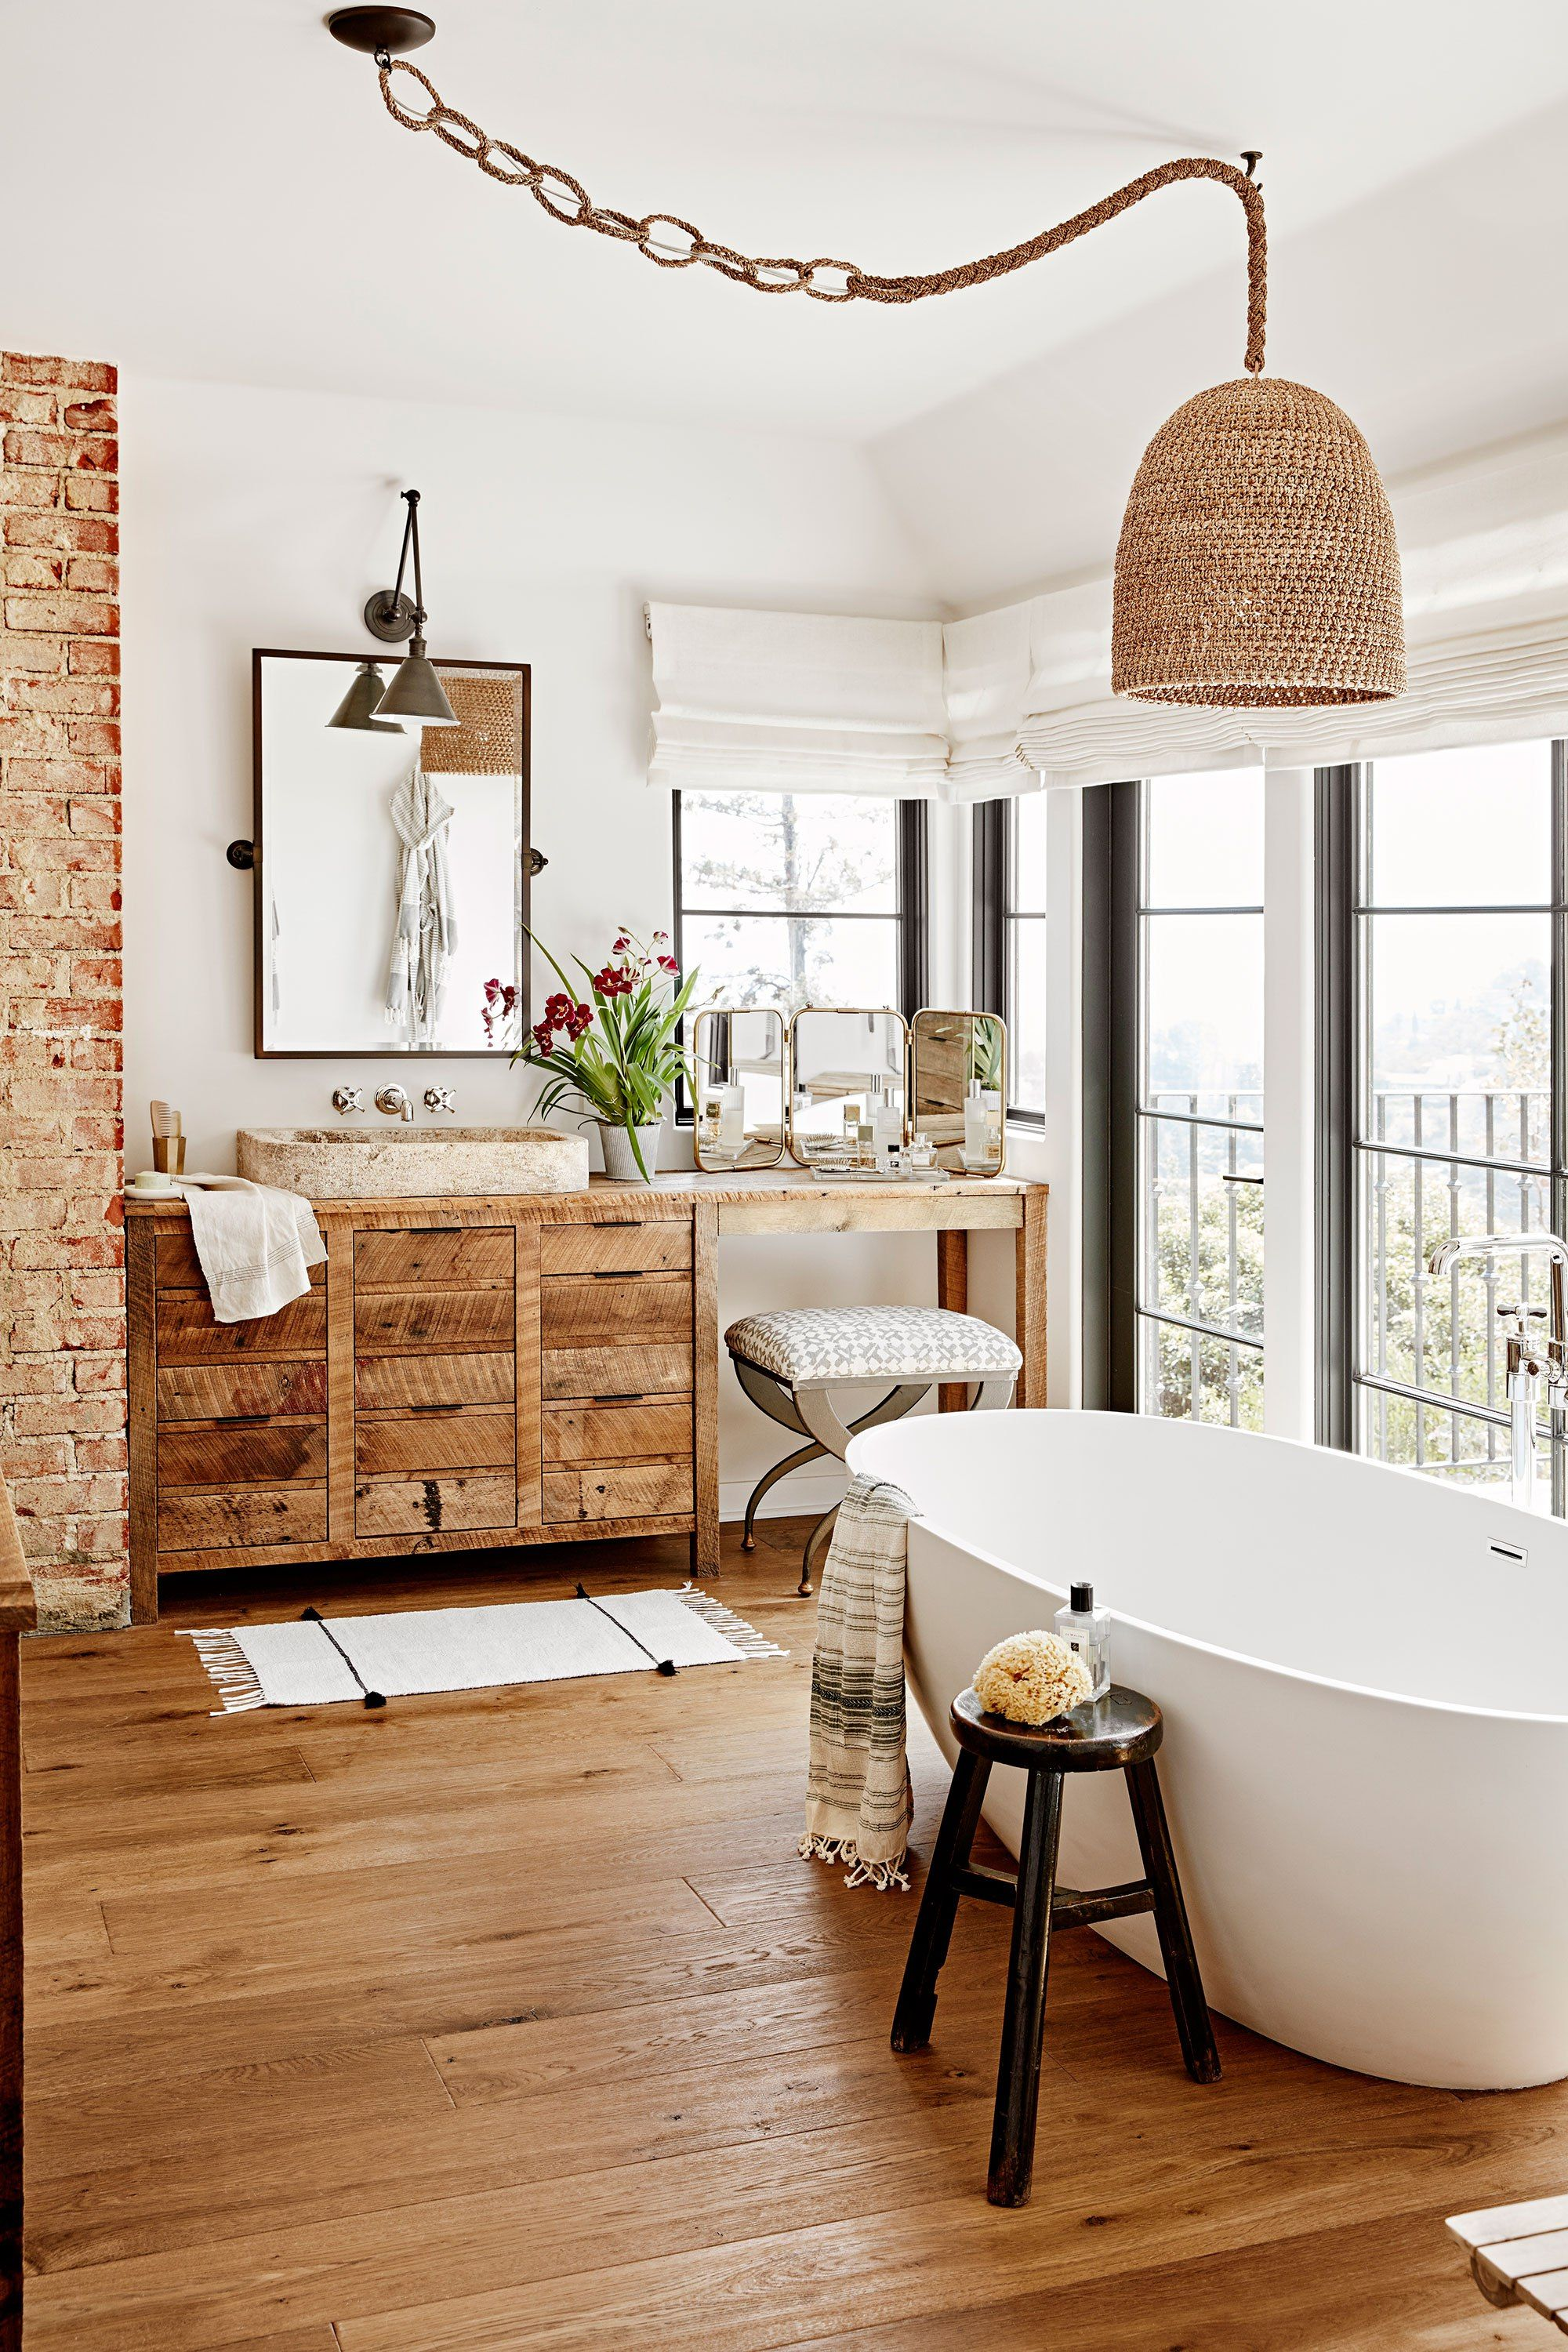 Photos Inside Julianne Hough S Cozy And Colorful Hollywood Home